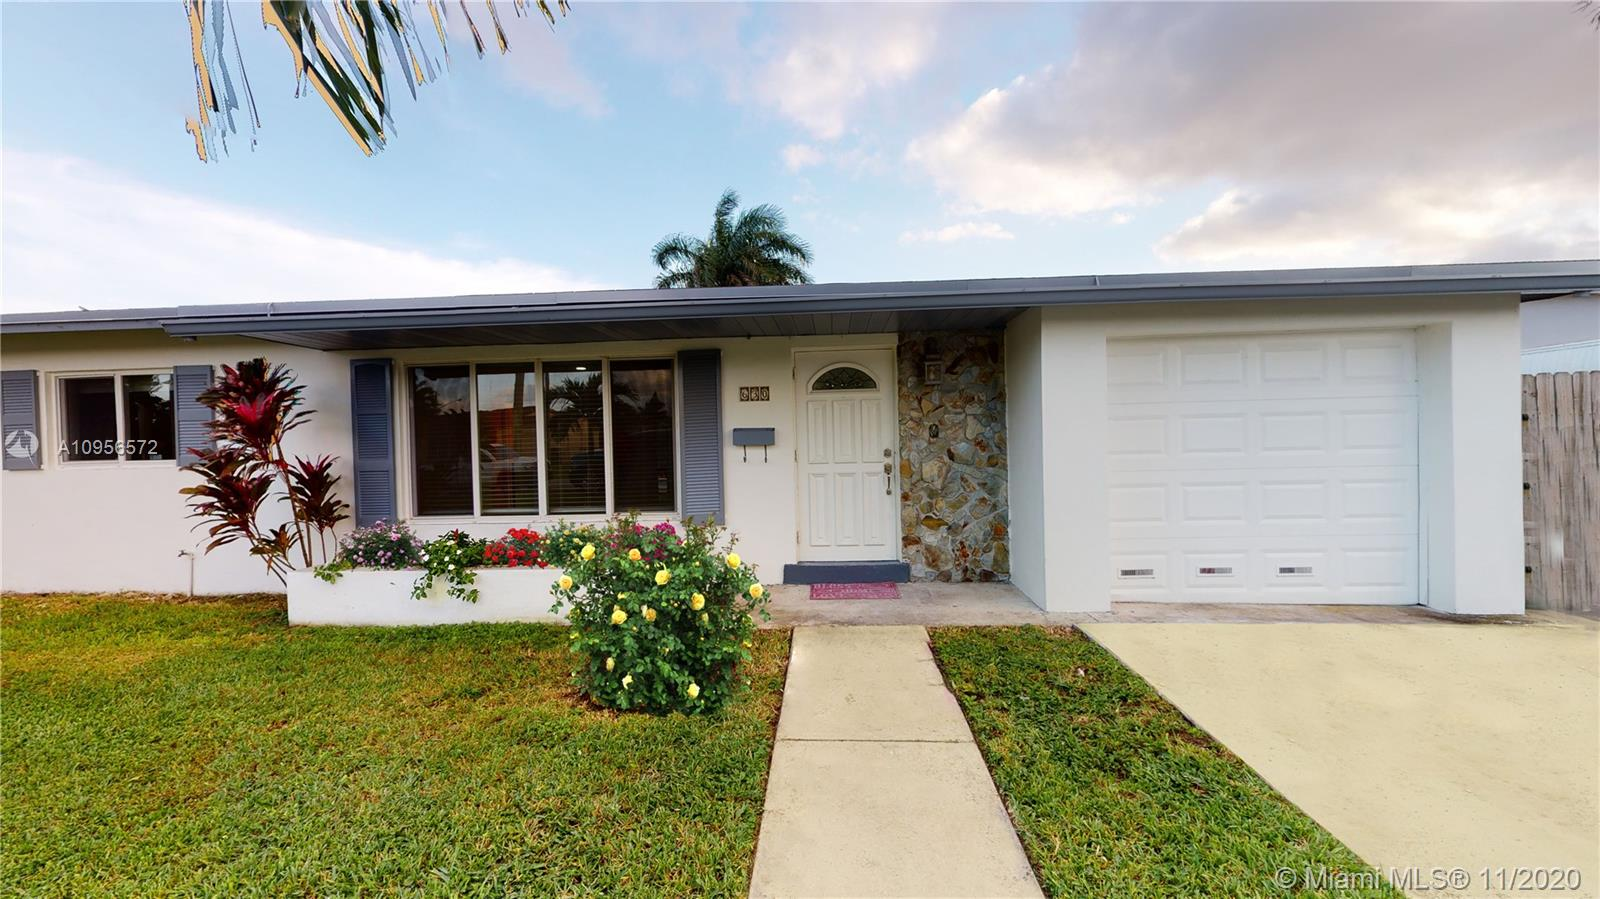 630 NW 16th St Property Photo - Homestead, FL real estate listing